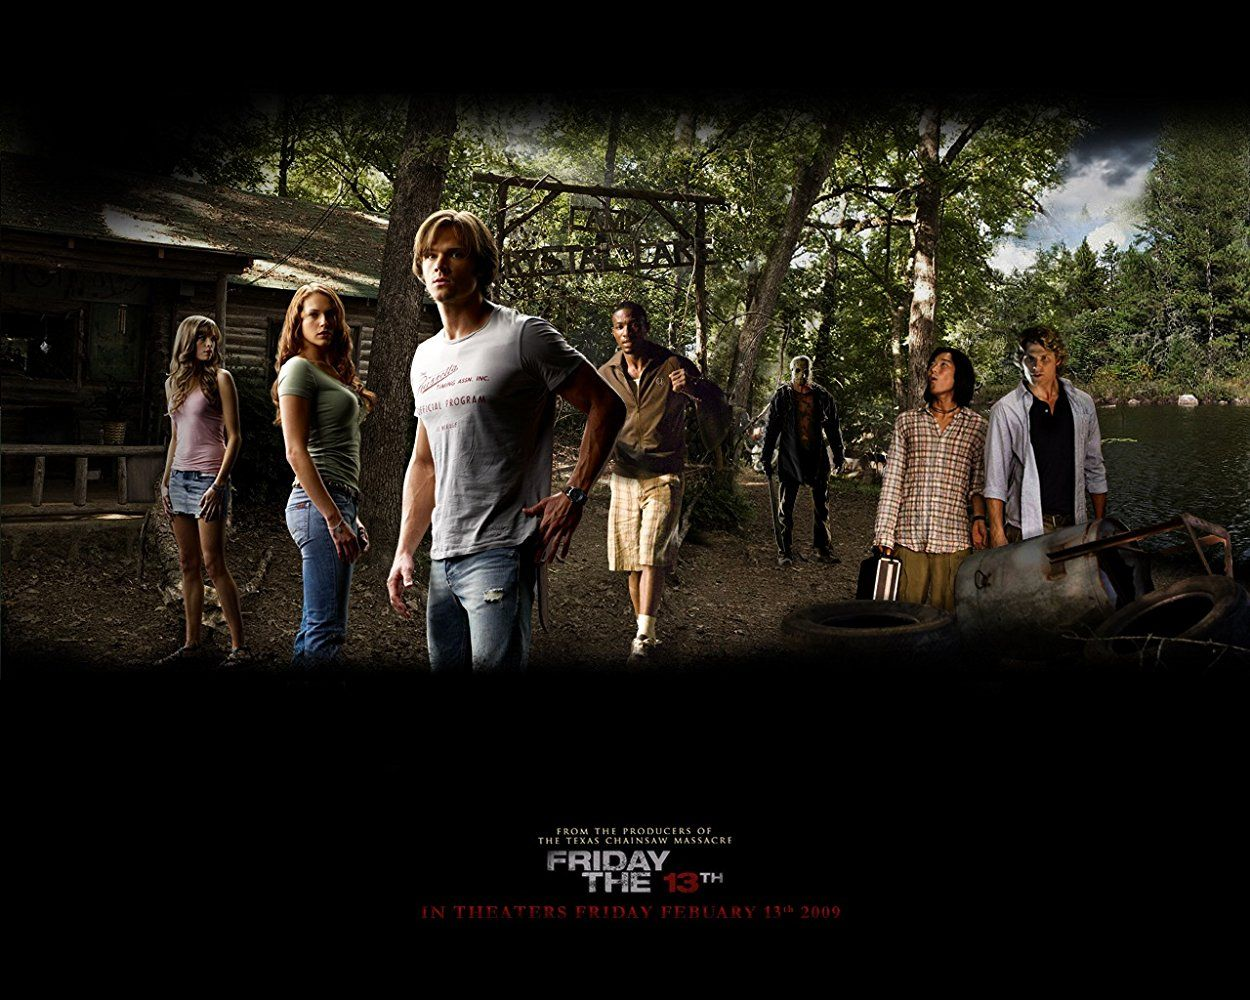 Friday The 13th 2009 Friday The 13th Travis Van Winkle